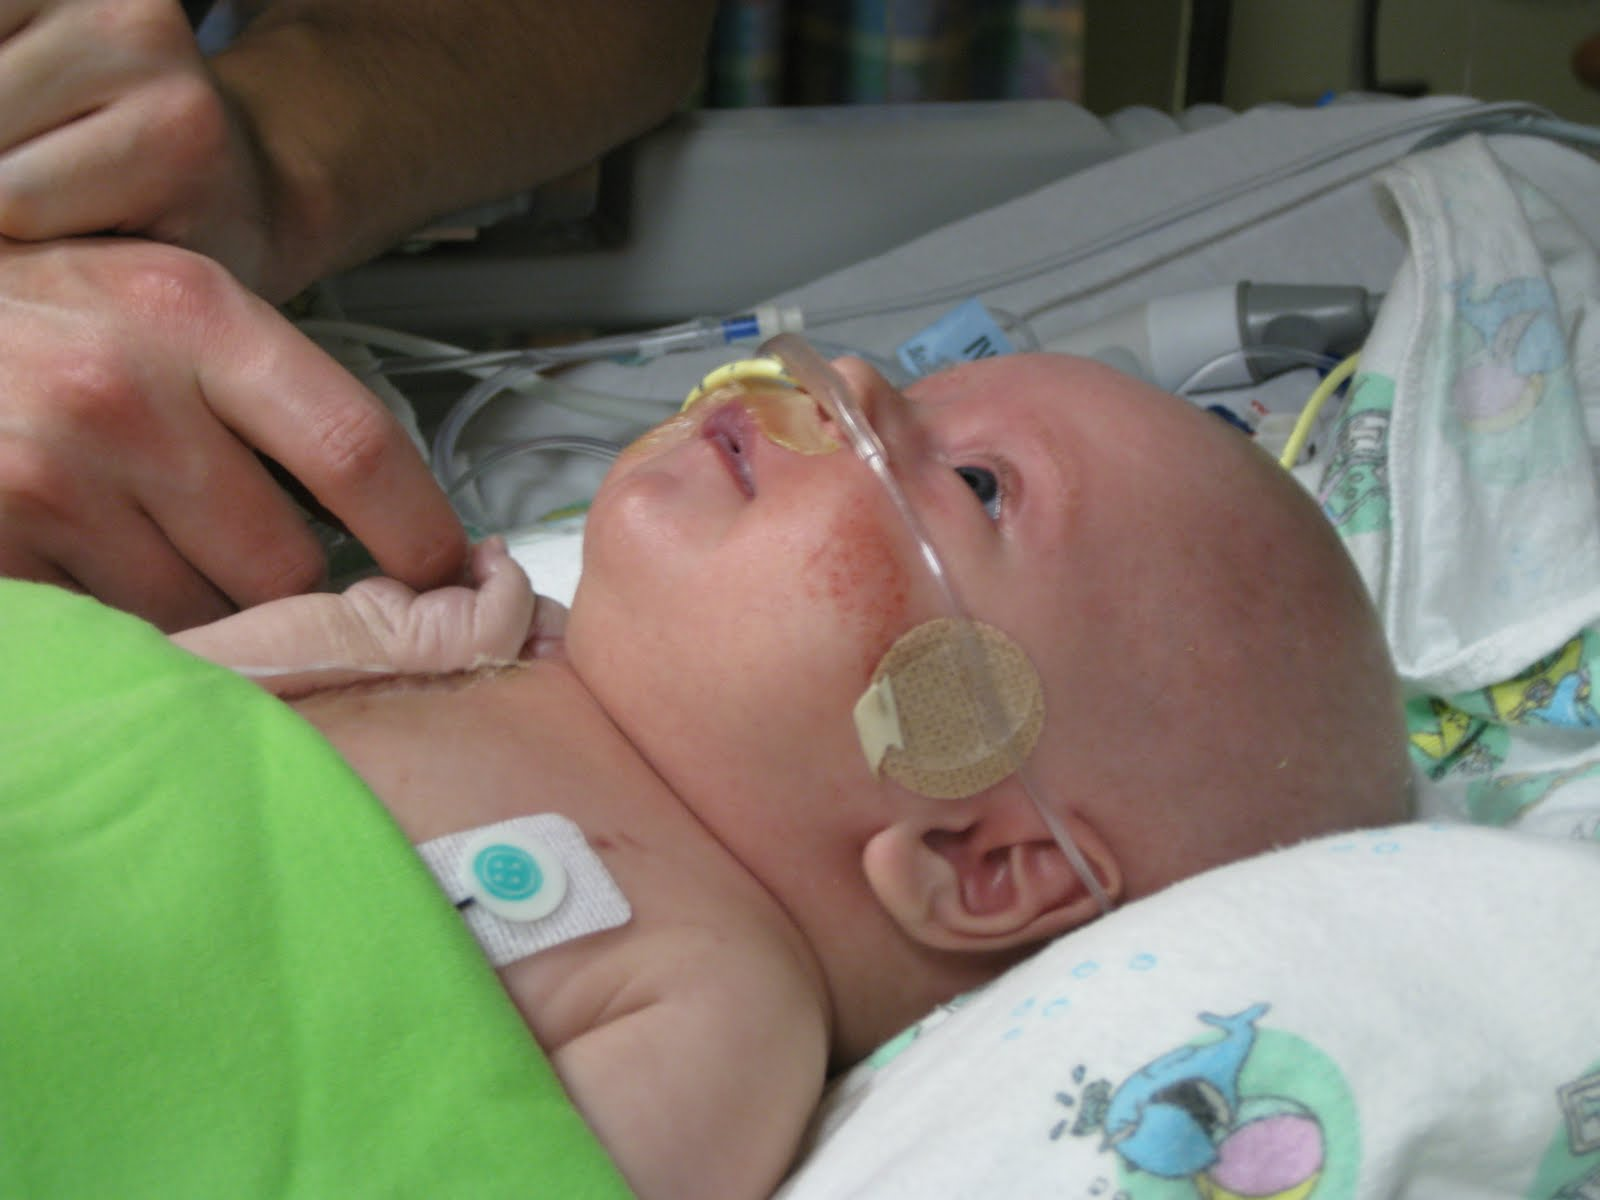 Nasal+cannula+placement